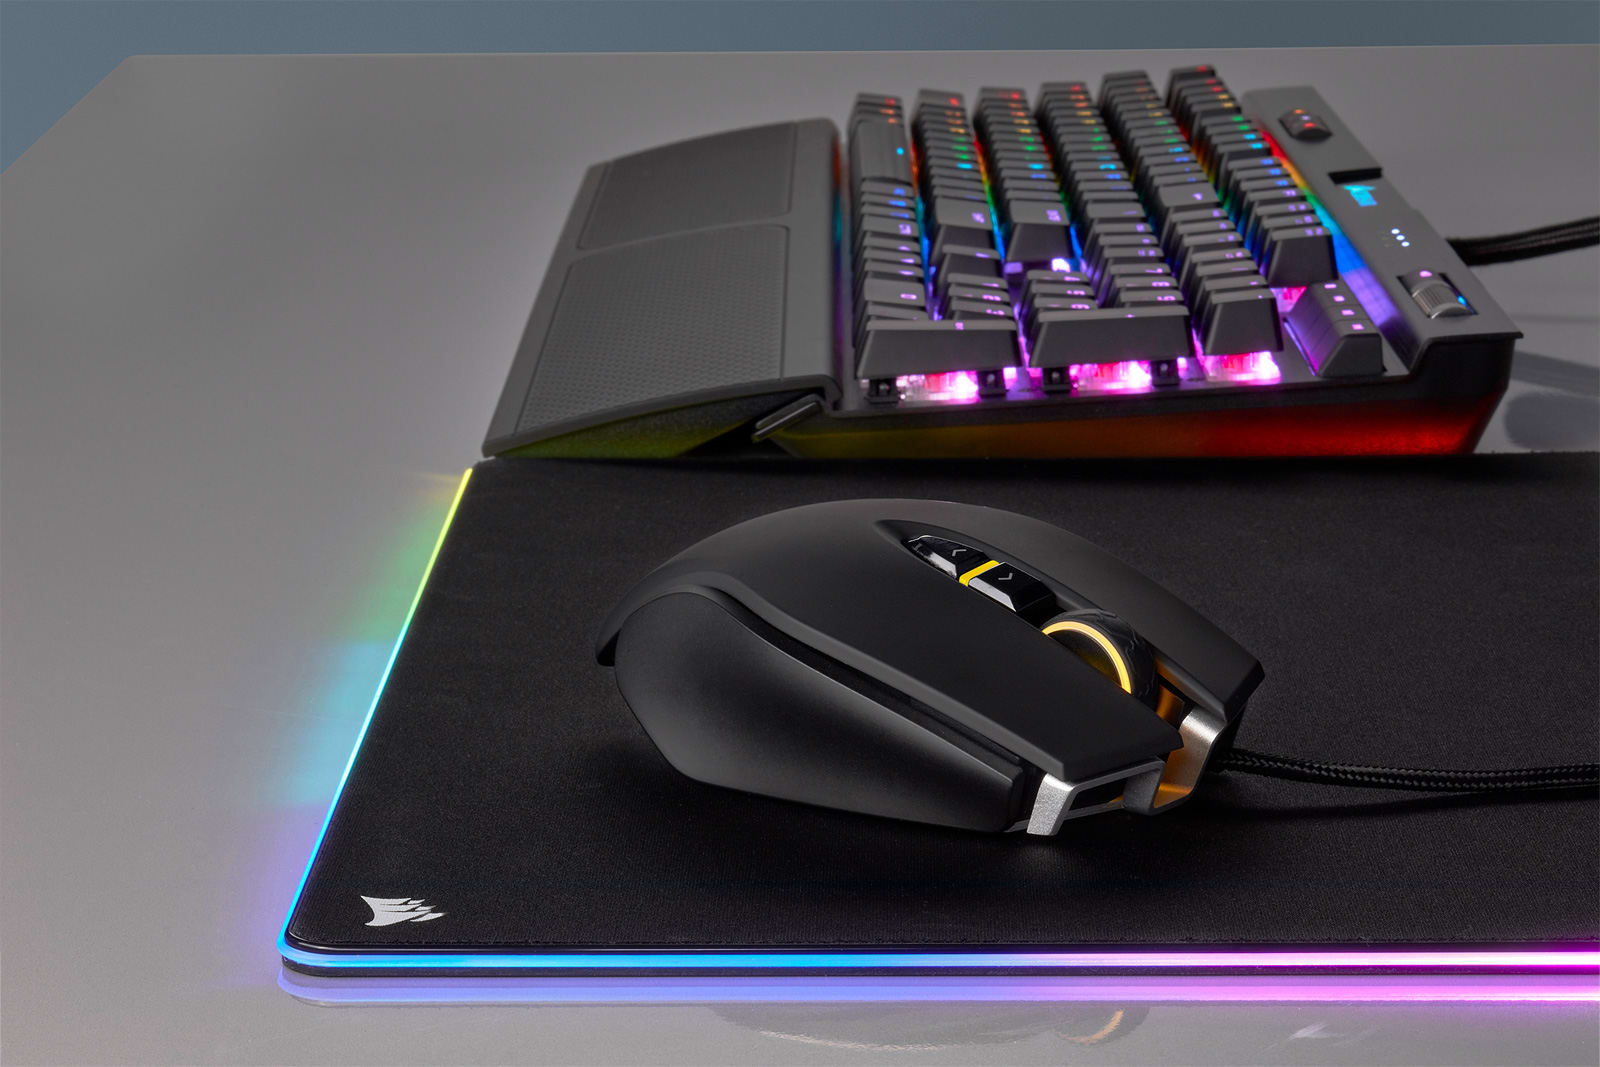 Corsair made its own lag-free wireless gaming mouse